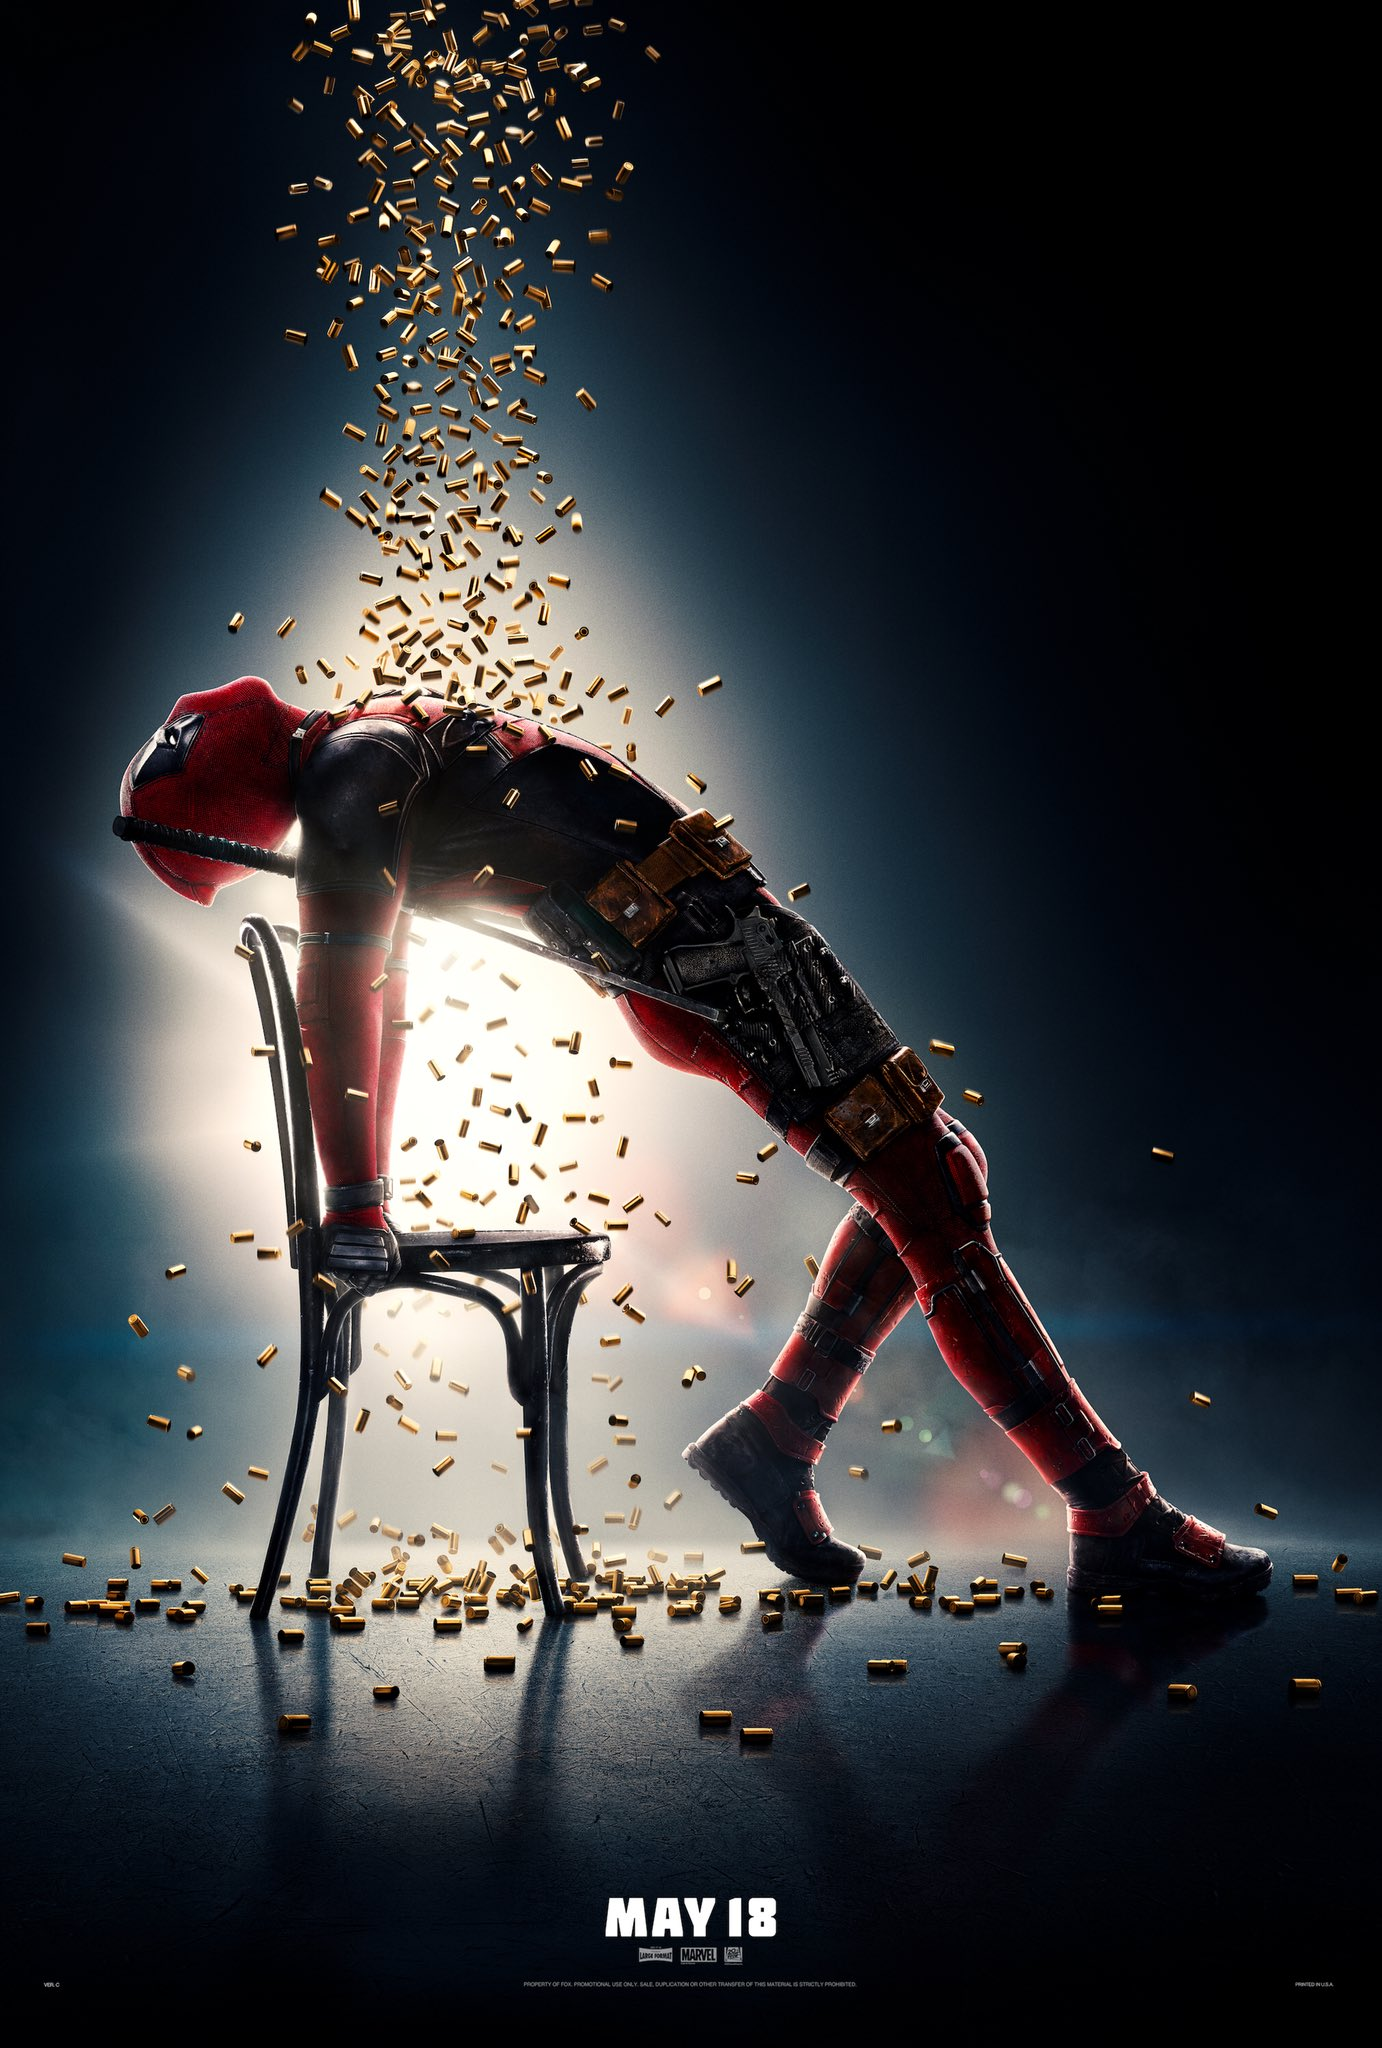 Deadpool 2 images, cast and synopsis.